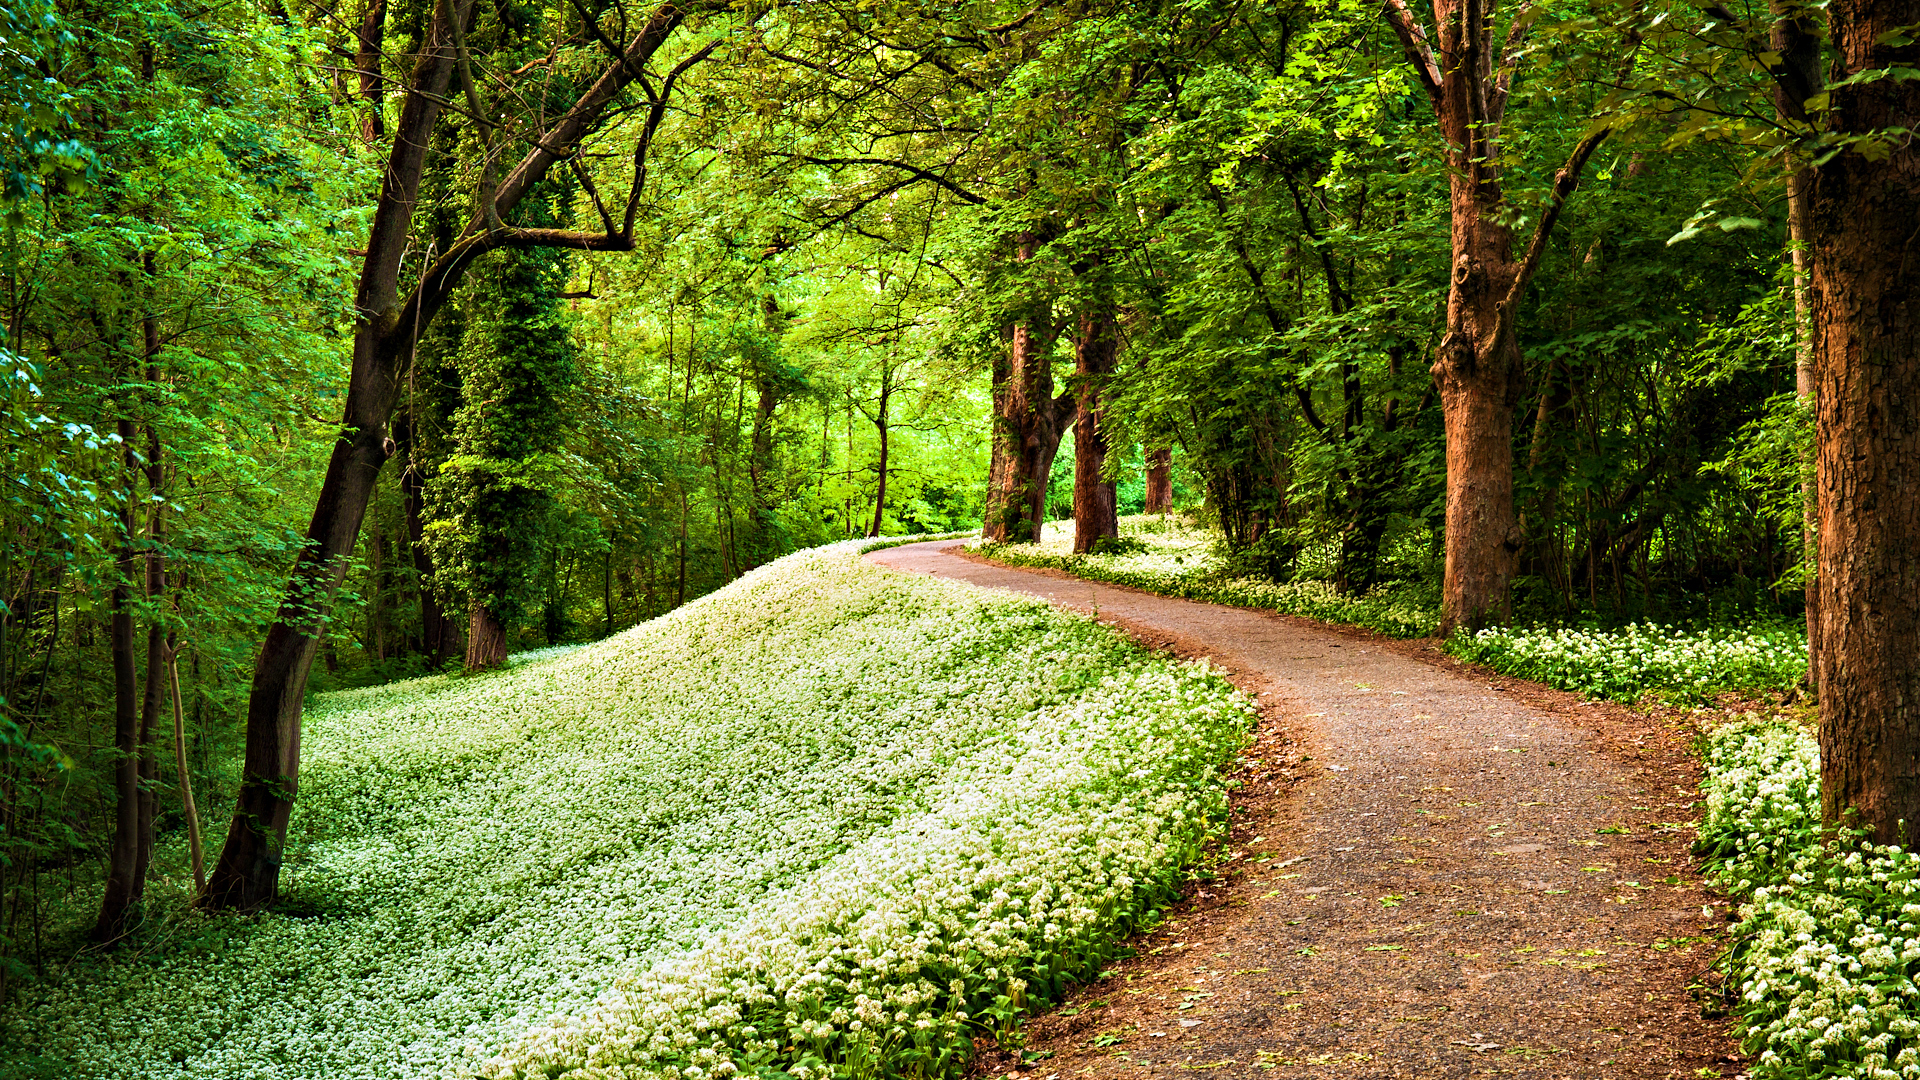 239 path hd wallpapers backgrounds wallpaper abyss Pathway images